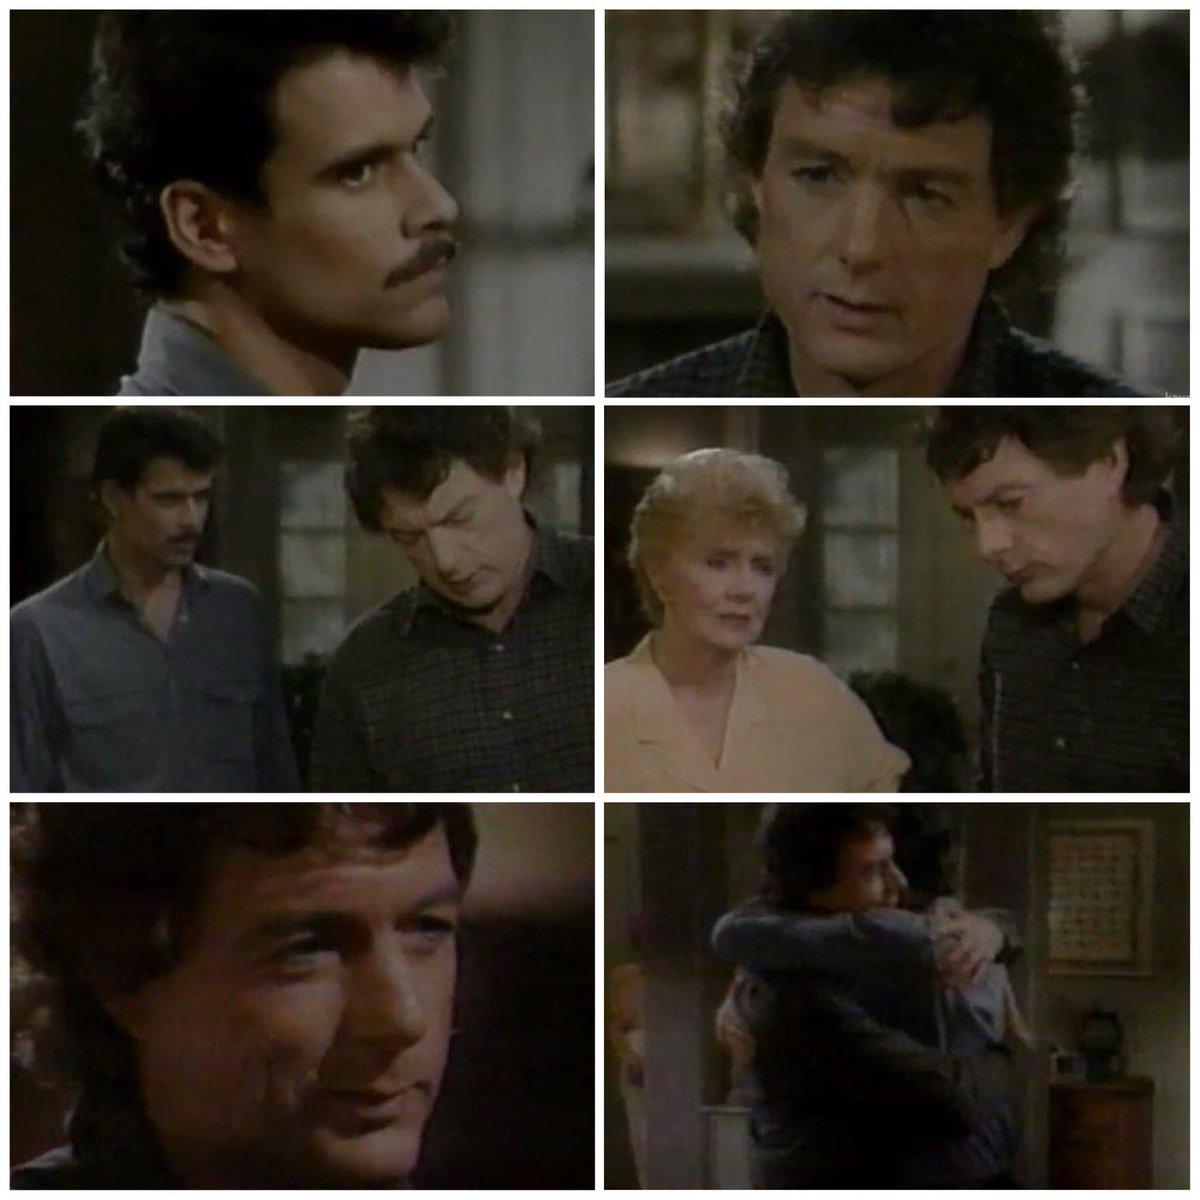 #OnThisDay in 1992, Roman made the final decision as to whether Bo would become a cop #Days <br>http://pic.twitter.com/JB6yWwJftF